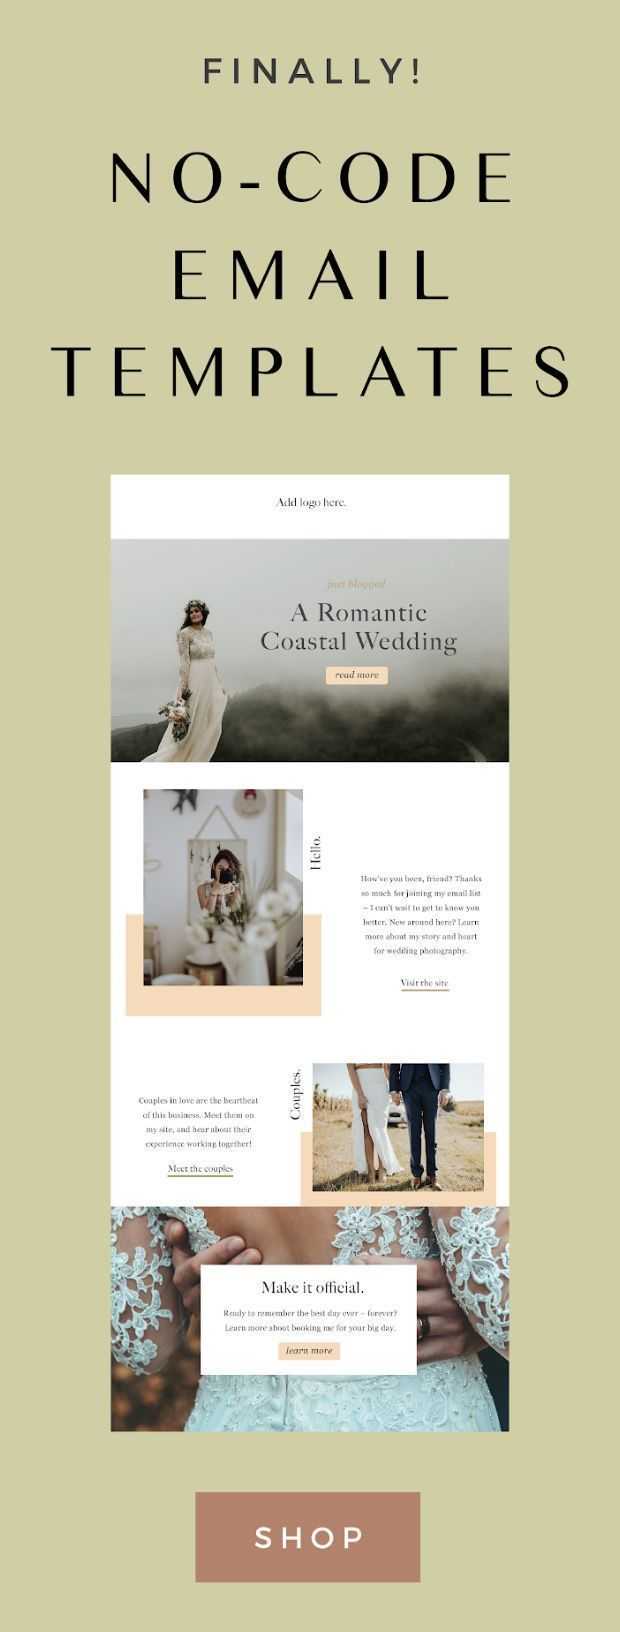 Finally, a better solution to creating creative email designs as a blogger, designer, photographer and more – with no code required! | mailchimp newsletter design, mailchimp template, mailchimp email design, mailchimp email, mailchimp tips, email templates, email design templates, design templates